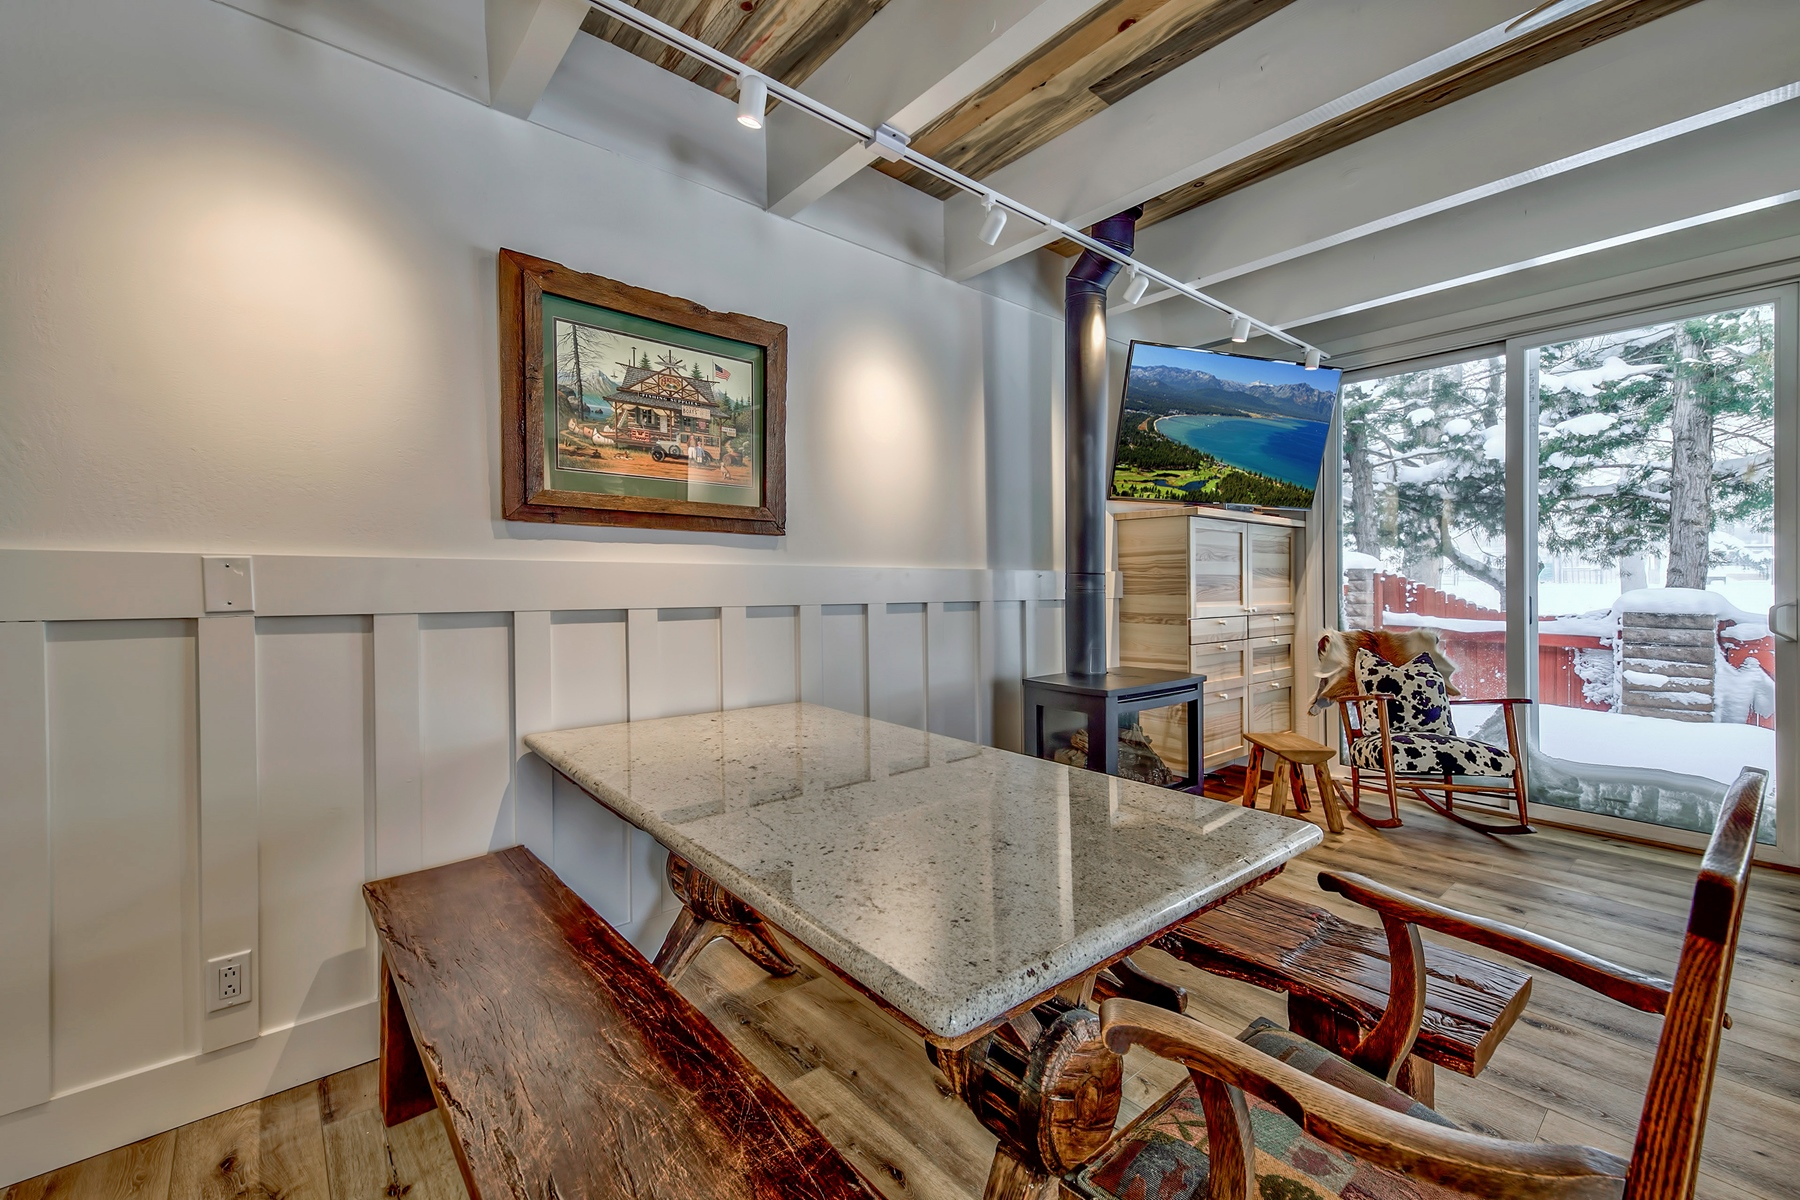 Additional photo for property listing at 439 Ala Wai #110, South Lake Tahoe, CA 96150 439 Ala Wai #110 South Lake Tahoe, California 96150 United States